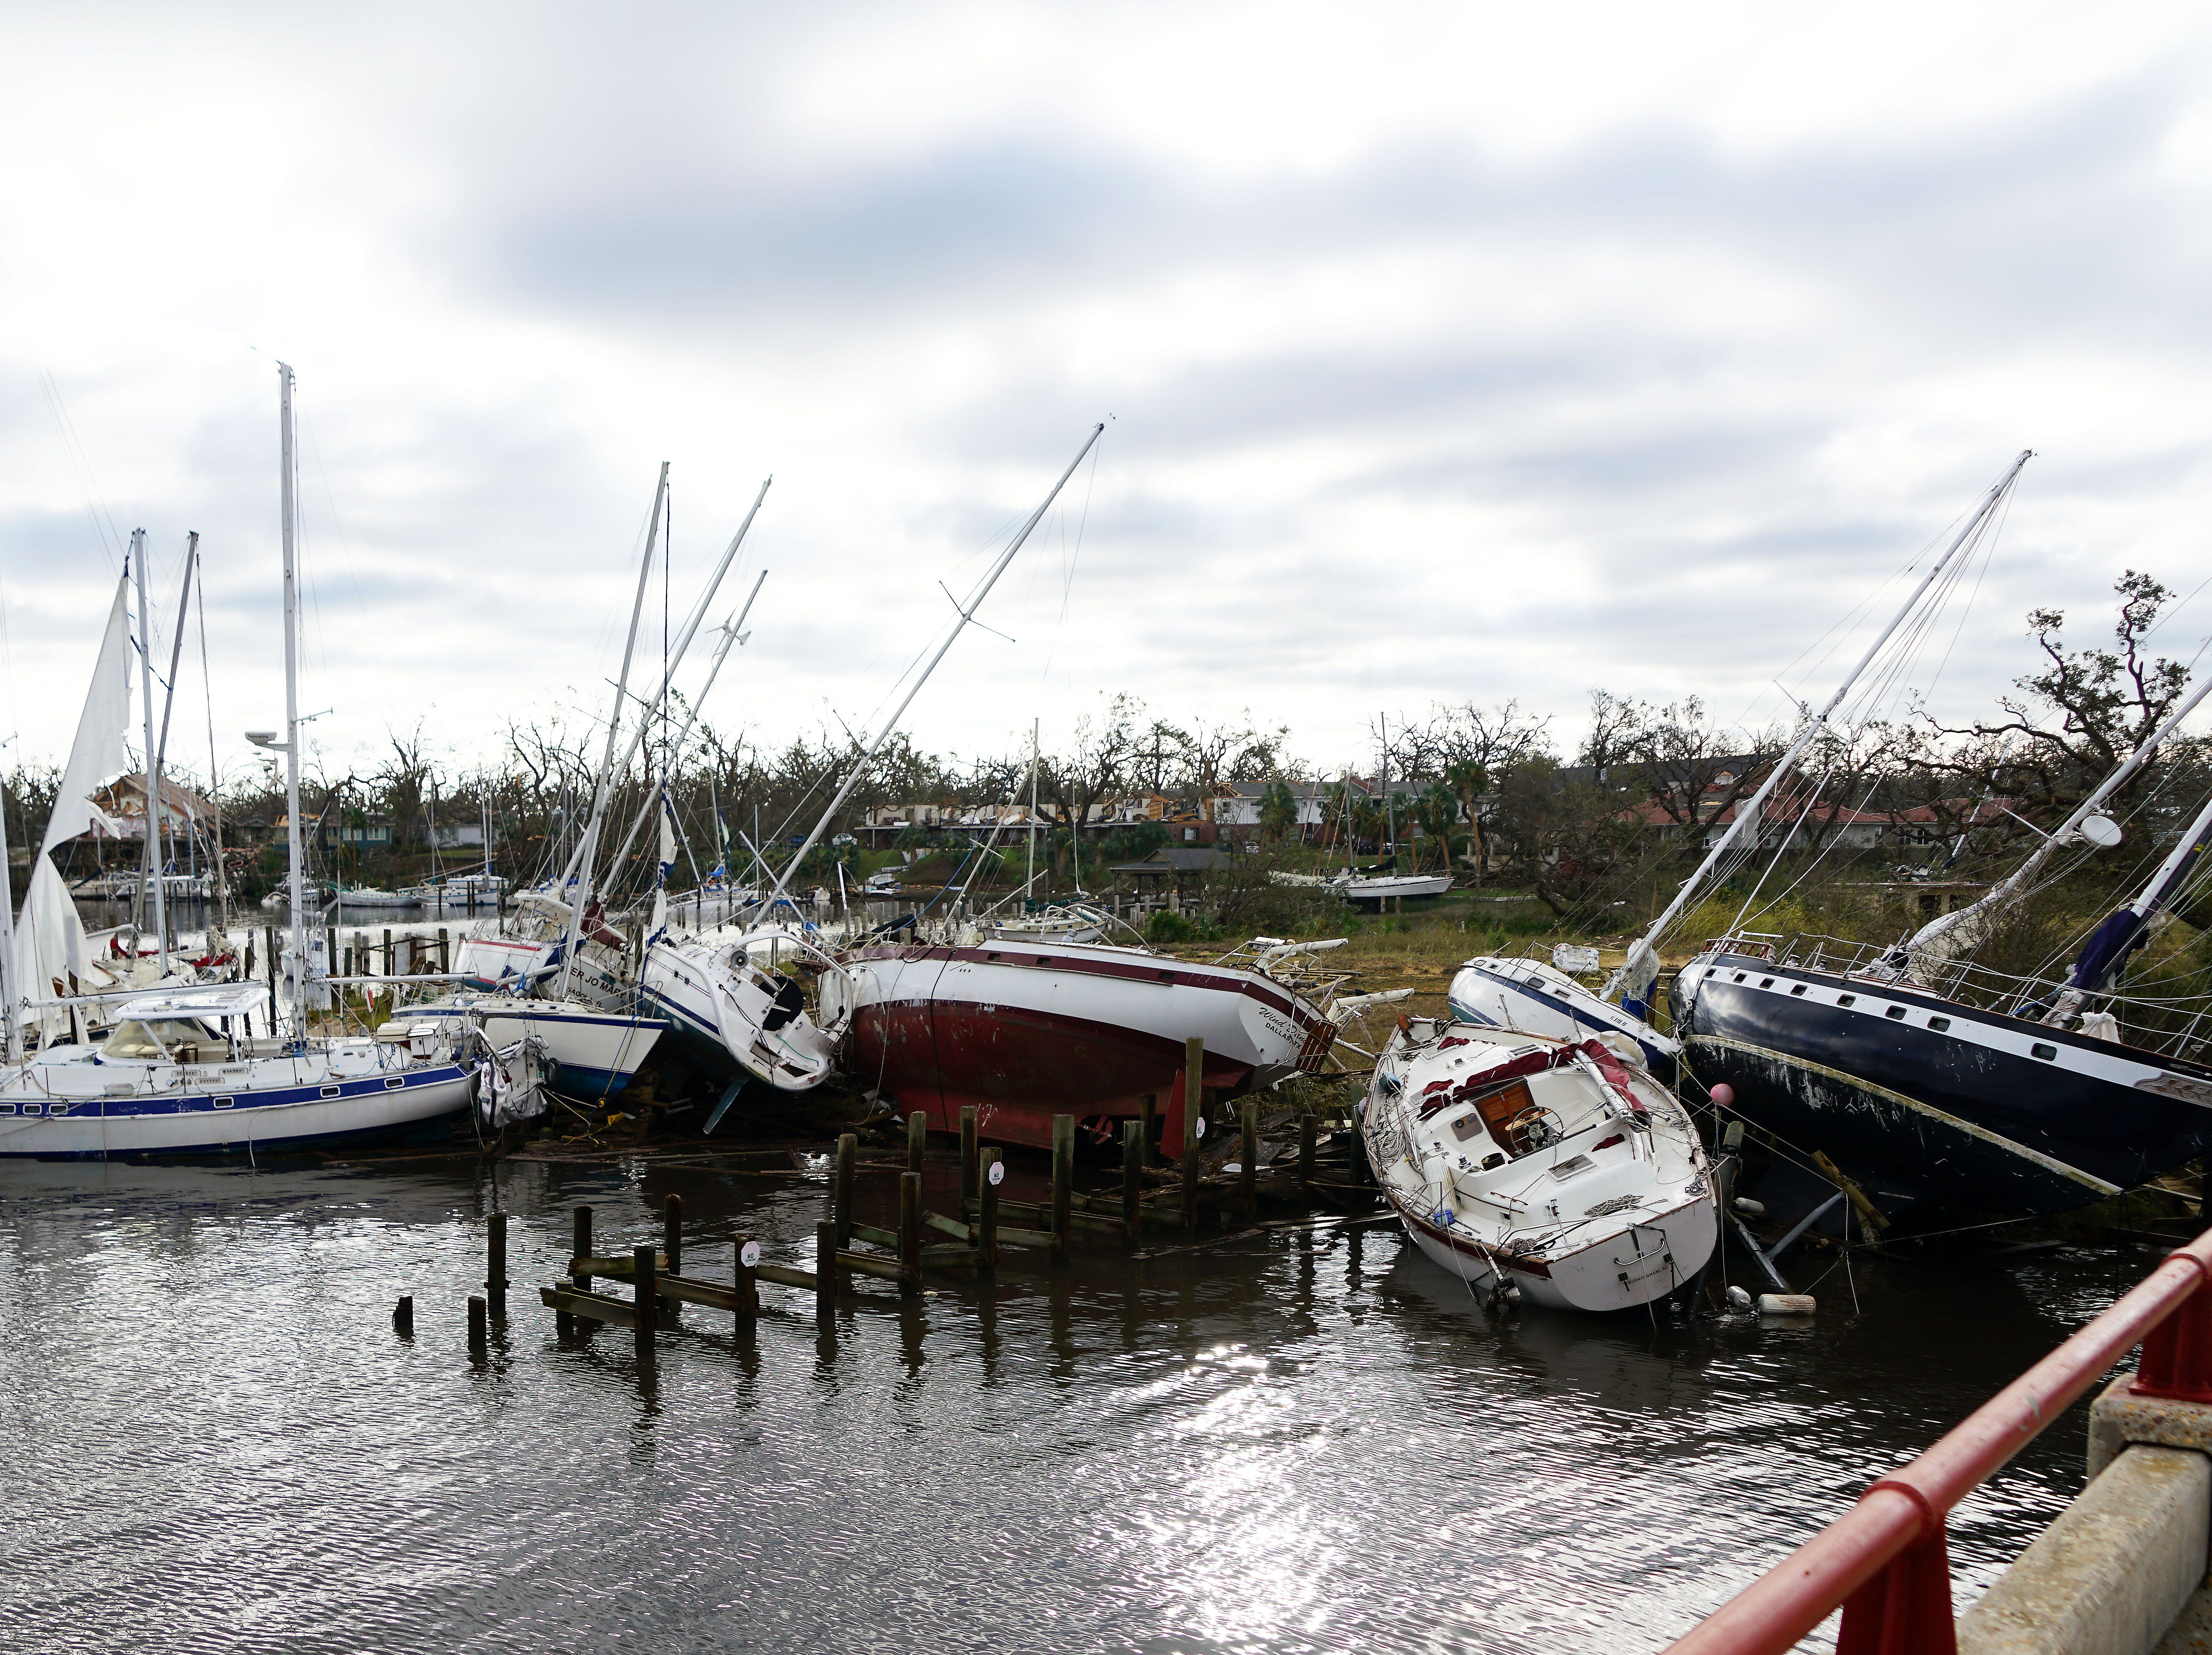 Boats piled in the harbor at Panama City, which suffered heavy winds during Hurricane Michael.